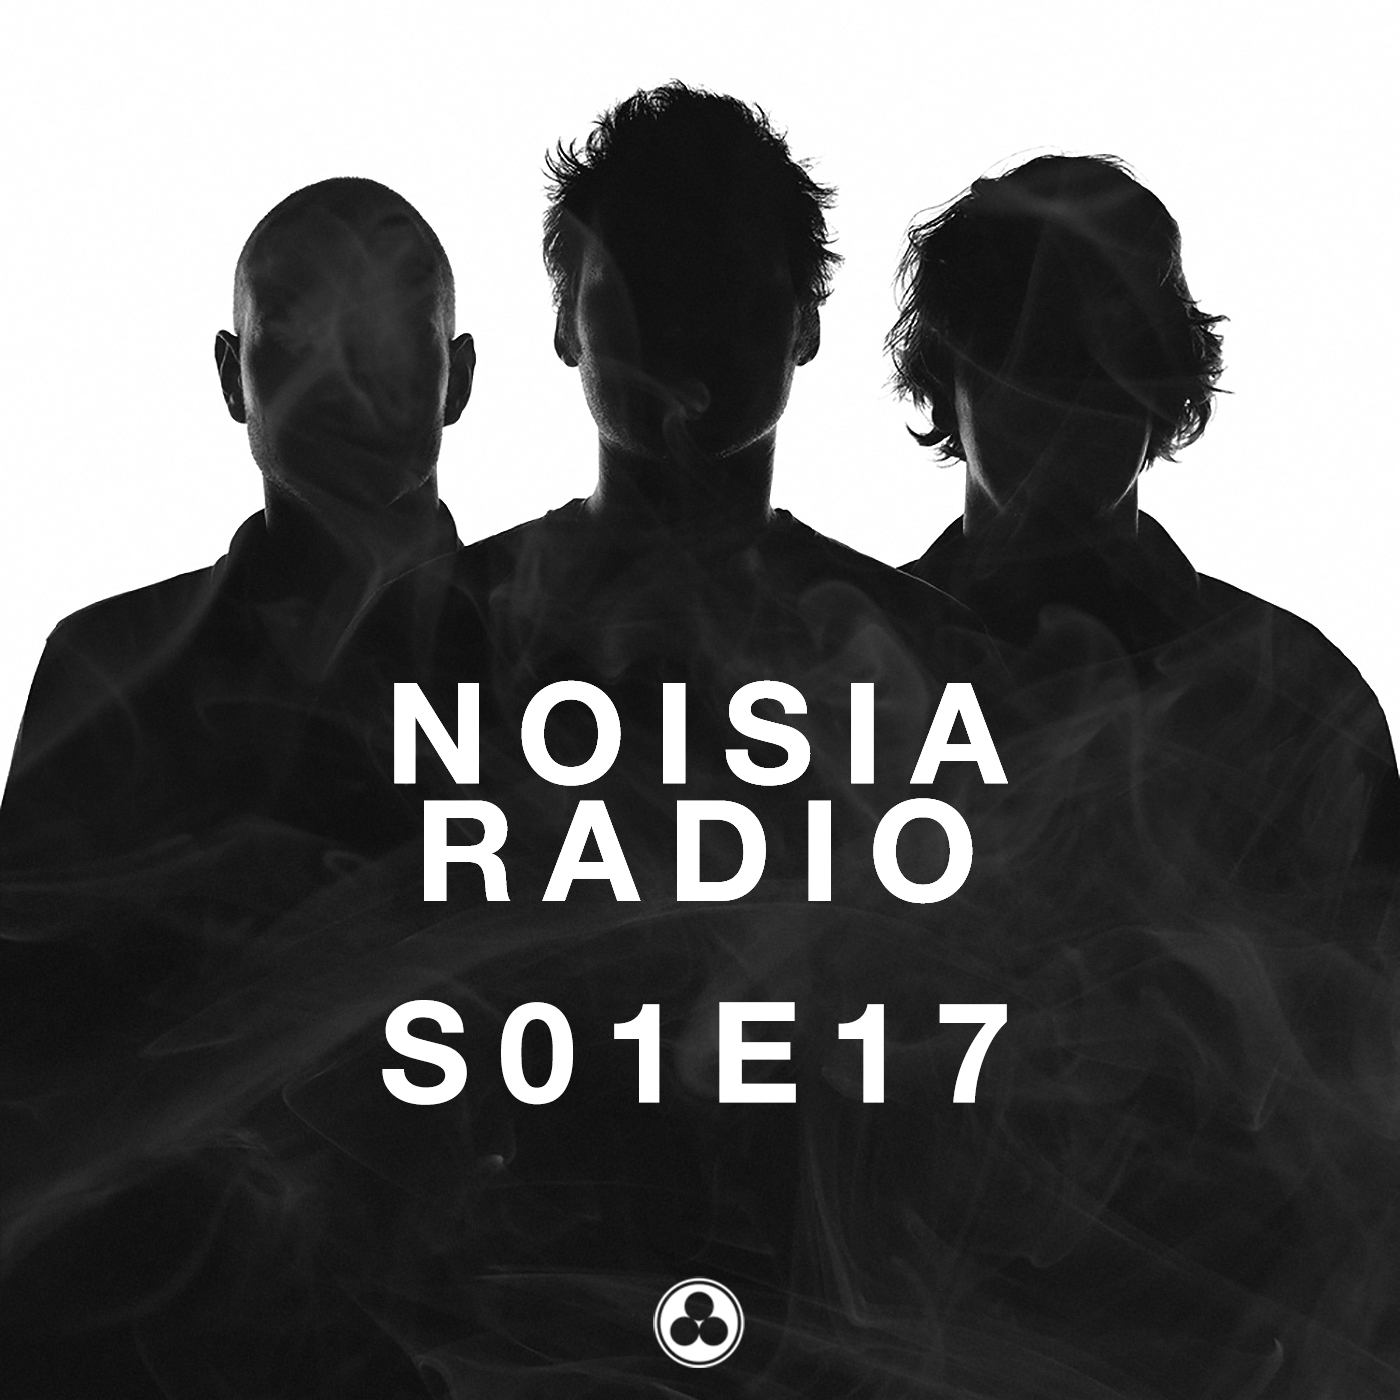 Noisia Radio S01E17